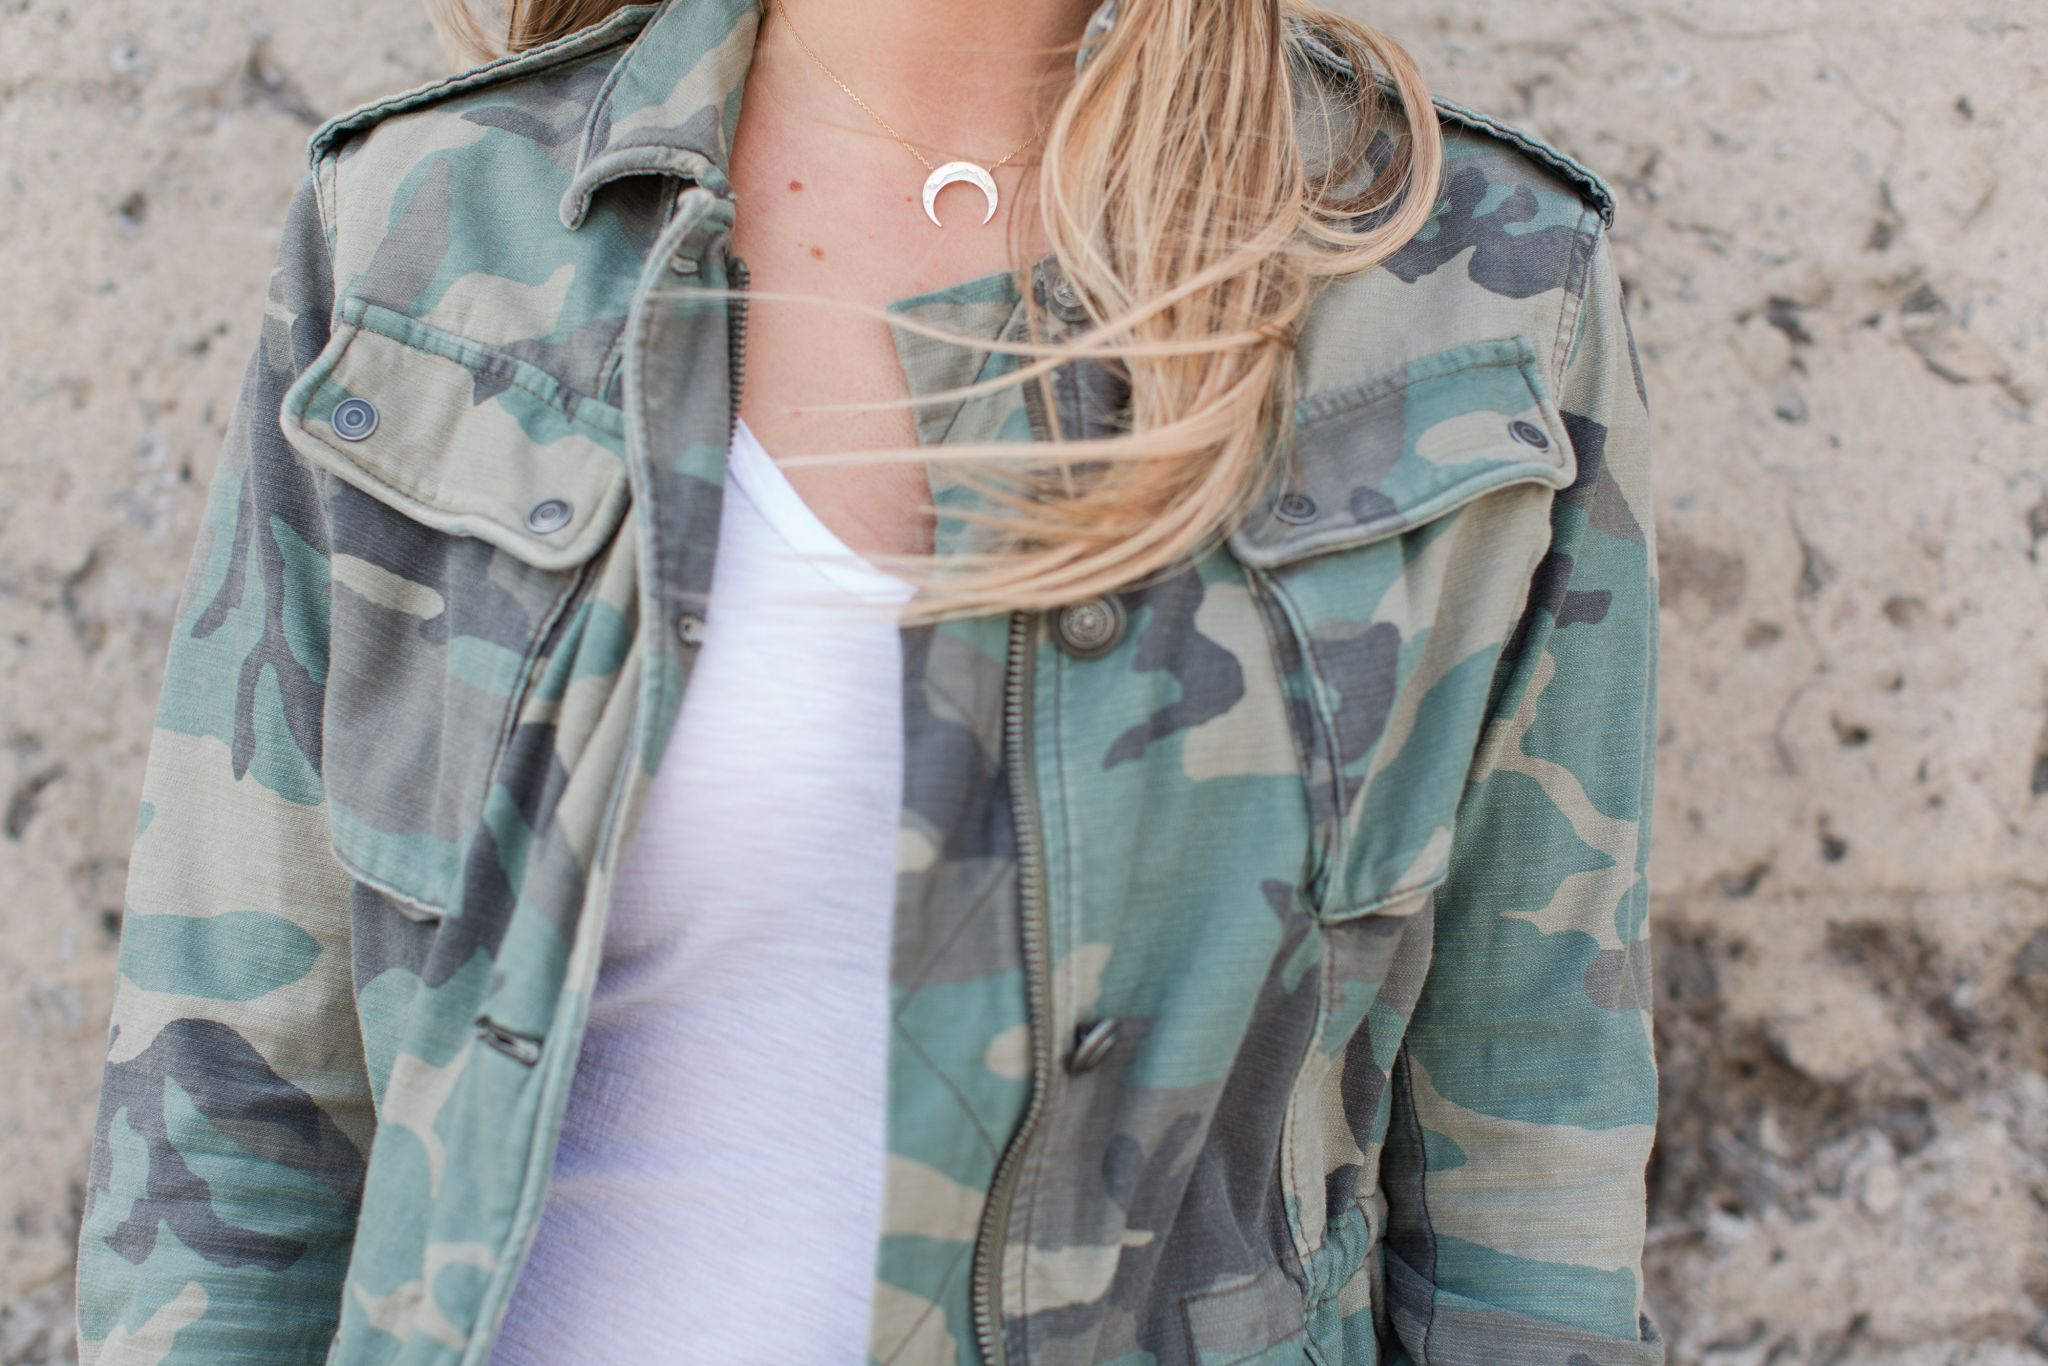 1 person, horn necklace, camo jacket